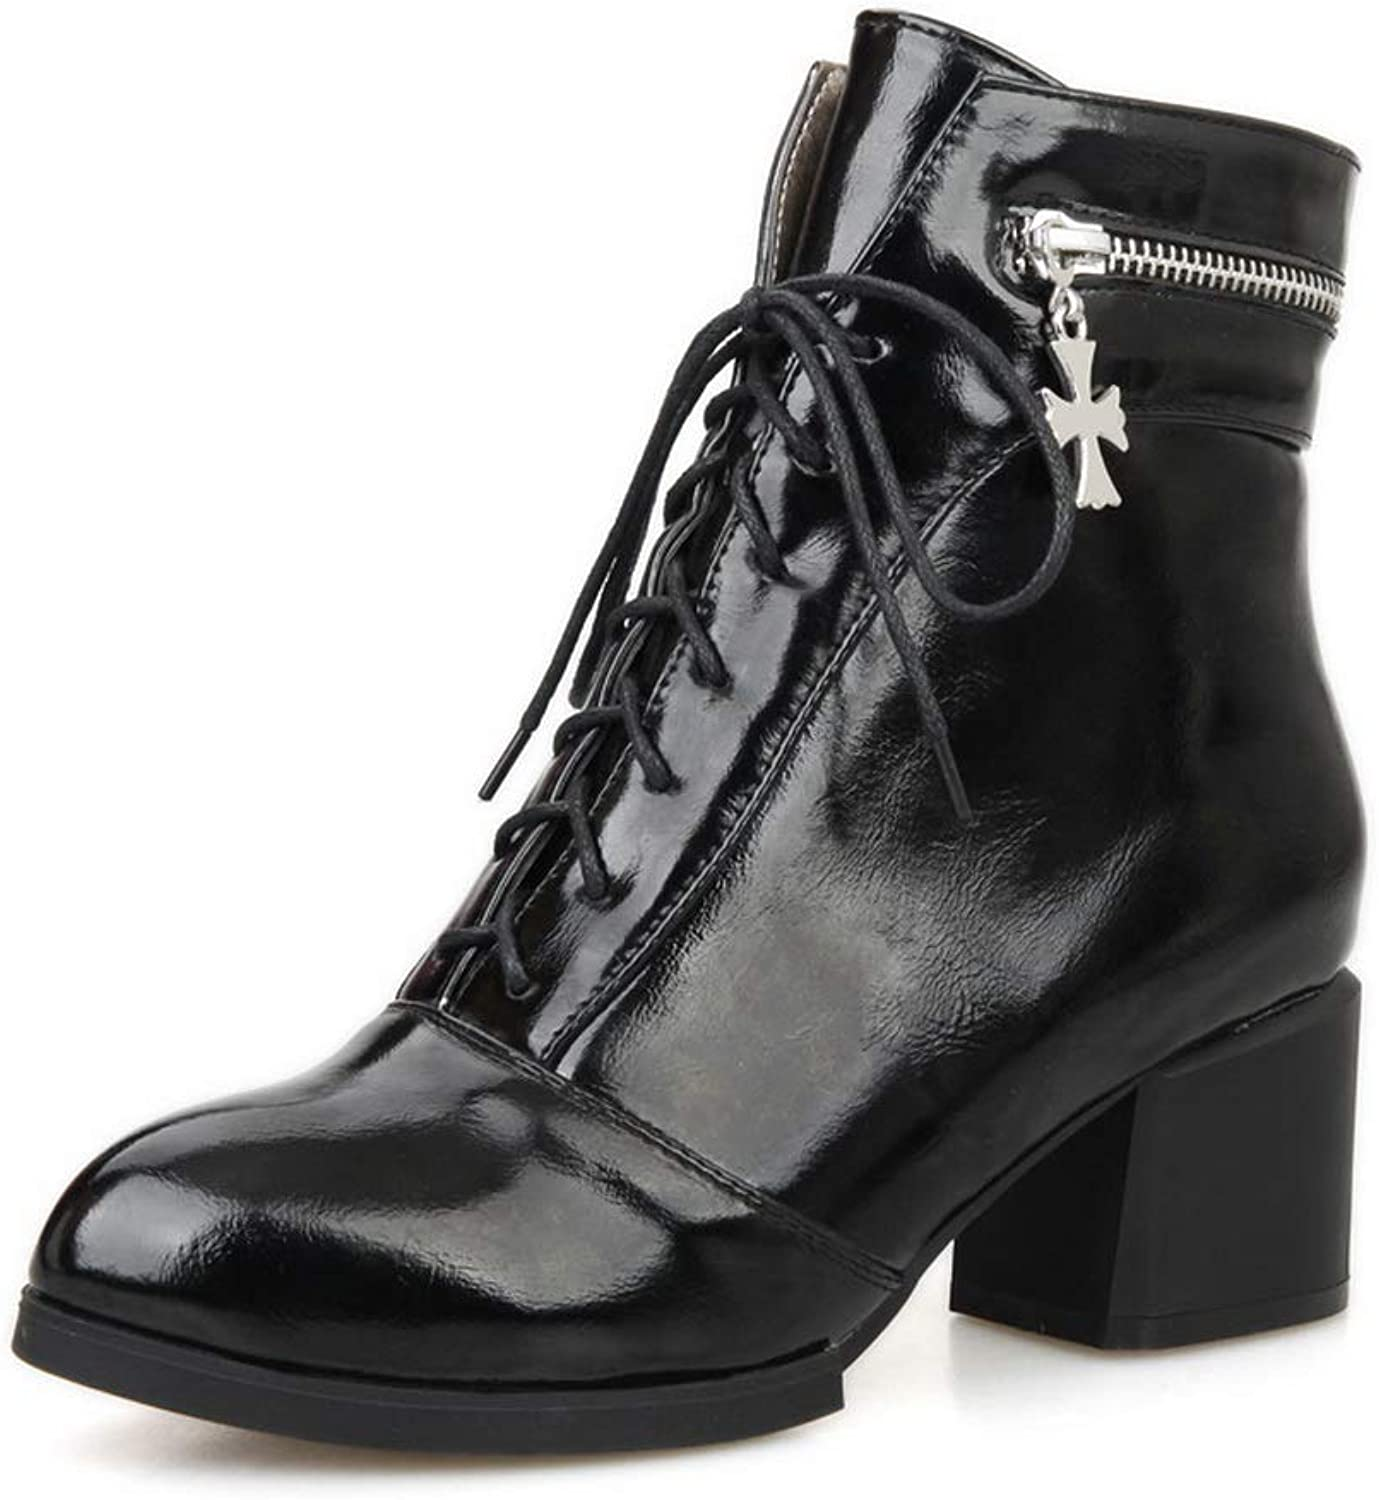 1TO9 Womens Fashion Solid Boots Urethane Boots MNS02822